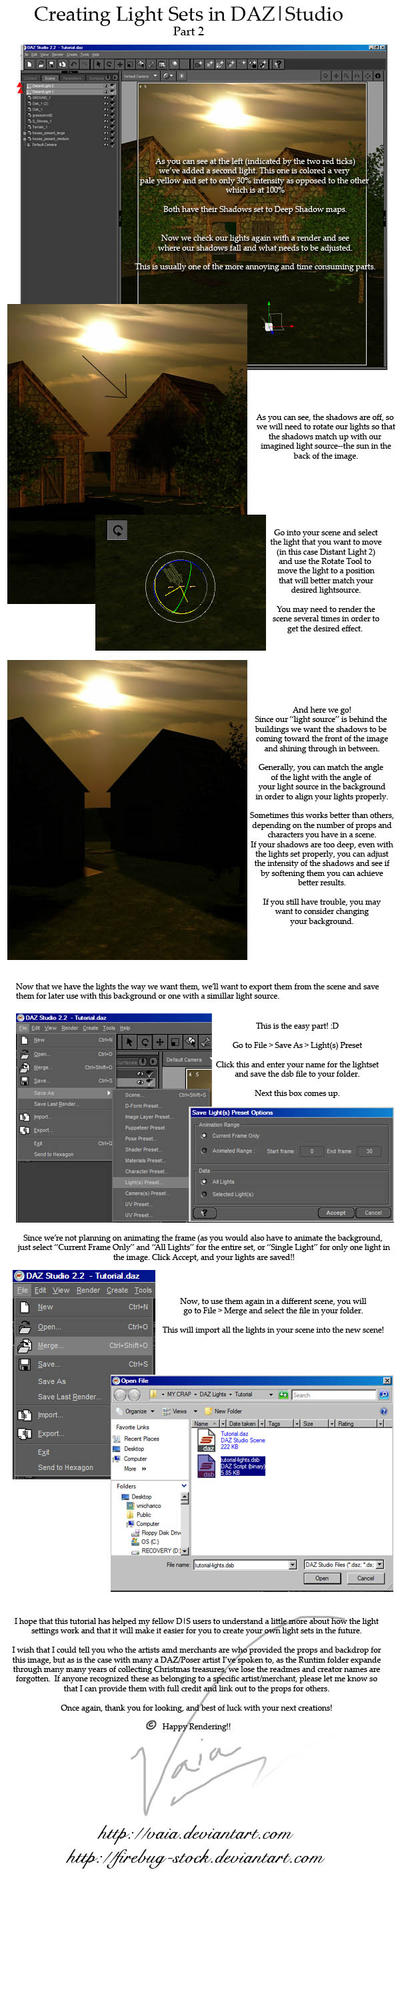 Creating LightSets in DAZ pt2 by firebug-stock